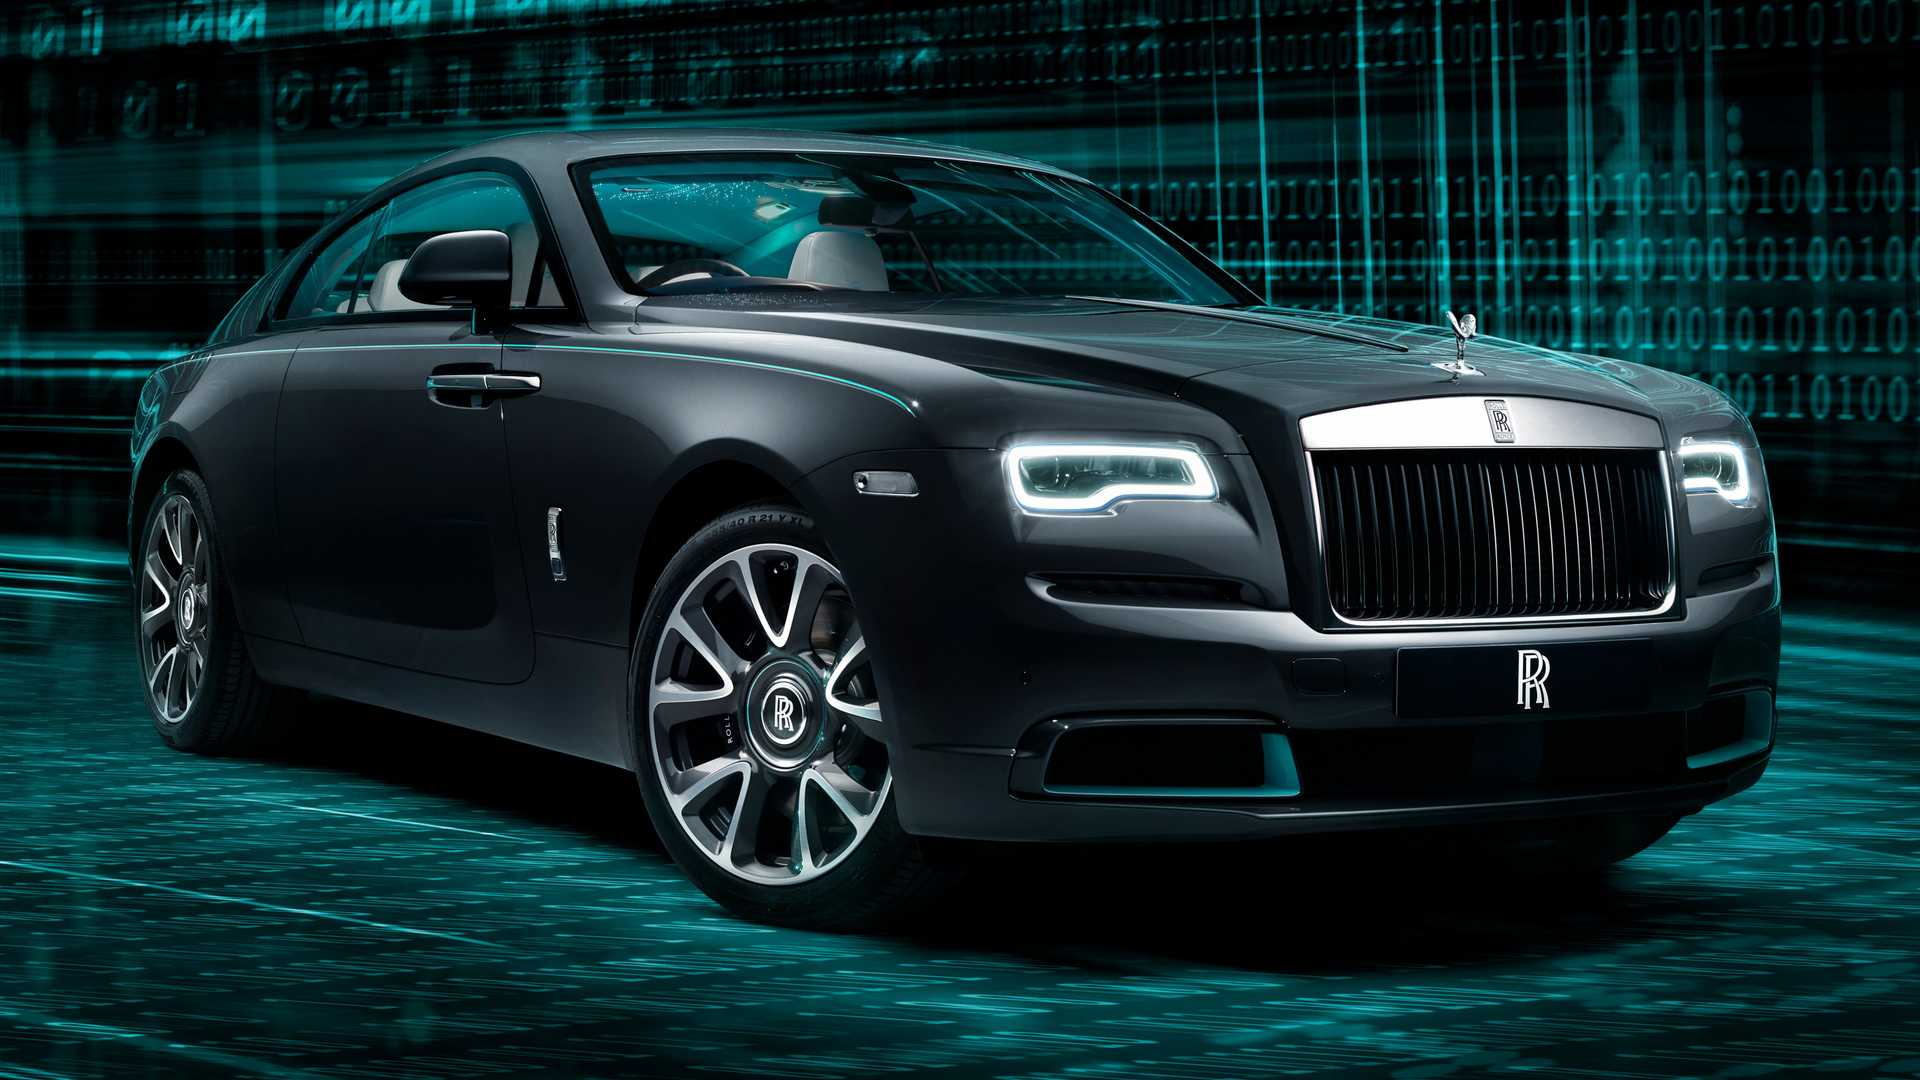 2020 Rolls-Royce Wraith Kryptos Collection is inspired by the art of codes